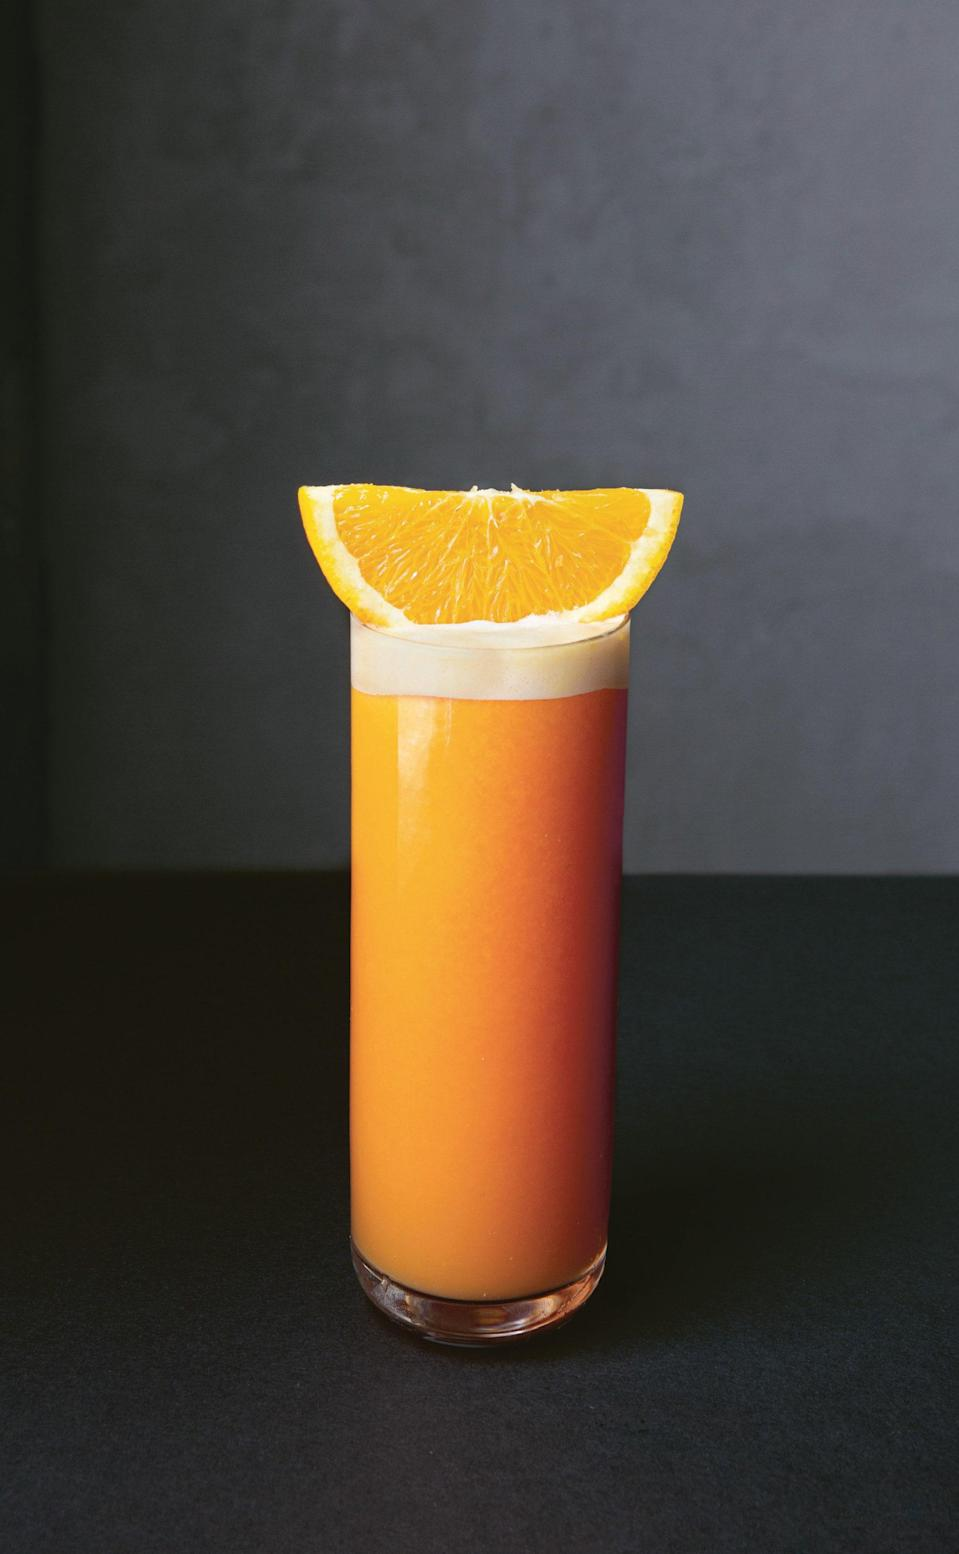 """This simple two-ingredient cocktail is the ideal brunch or before-dinner drink. Campari gives it a delicate bitterness, while fresh orange juice creates a beautiful froth. This month, we also built you an interactive recipe finder in case you're looking for more <a href=""""https://www.epicurious.com/recipes-menus/cocktail-recipe-finder-article?mbid=synd_yahoo_rss"""" rel=""""nofollow noopener"""" target=""""_blank"""" data-ylk=""""slk:cocktail ideas"""" class=""""link rapid-noclick-resp"""">cocktail ideas</a>. <a href=""""https://www.epicurious.com/recipes/food/views/garibaldi-campari-cocktail?mbid=synd_yahoo_rss"""" rel=""""nofollow noopener"""" target=""""_blank"""" data-ylk=""""slk:See recipe."""" class=""""link rapid-noclick-resp"""">See recipe.</a>"""